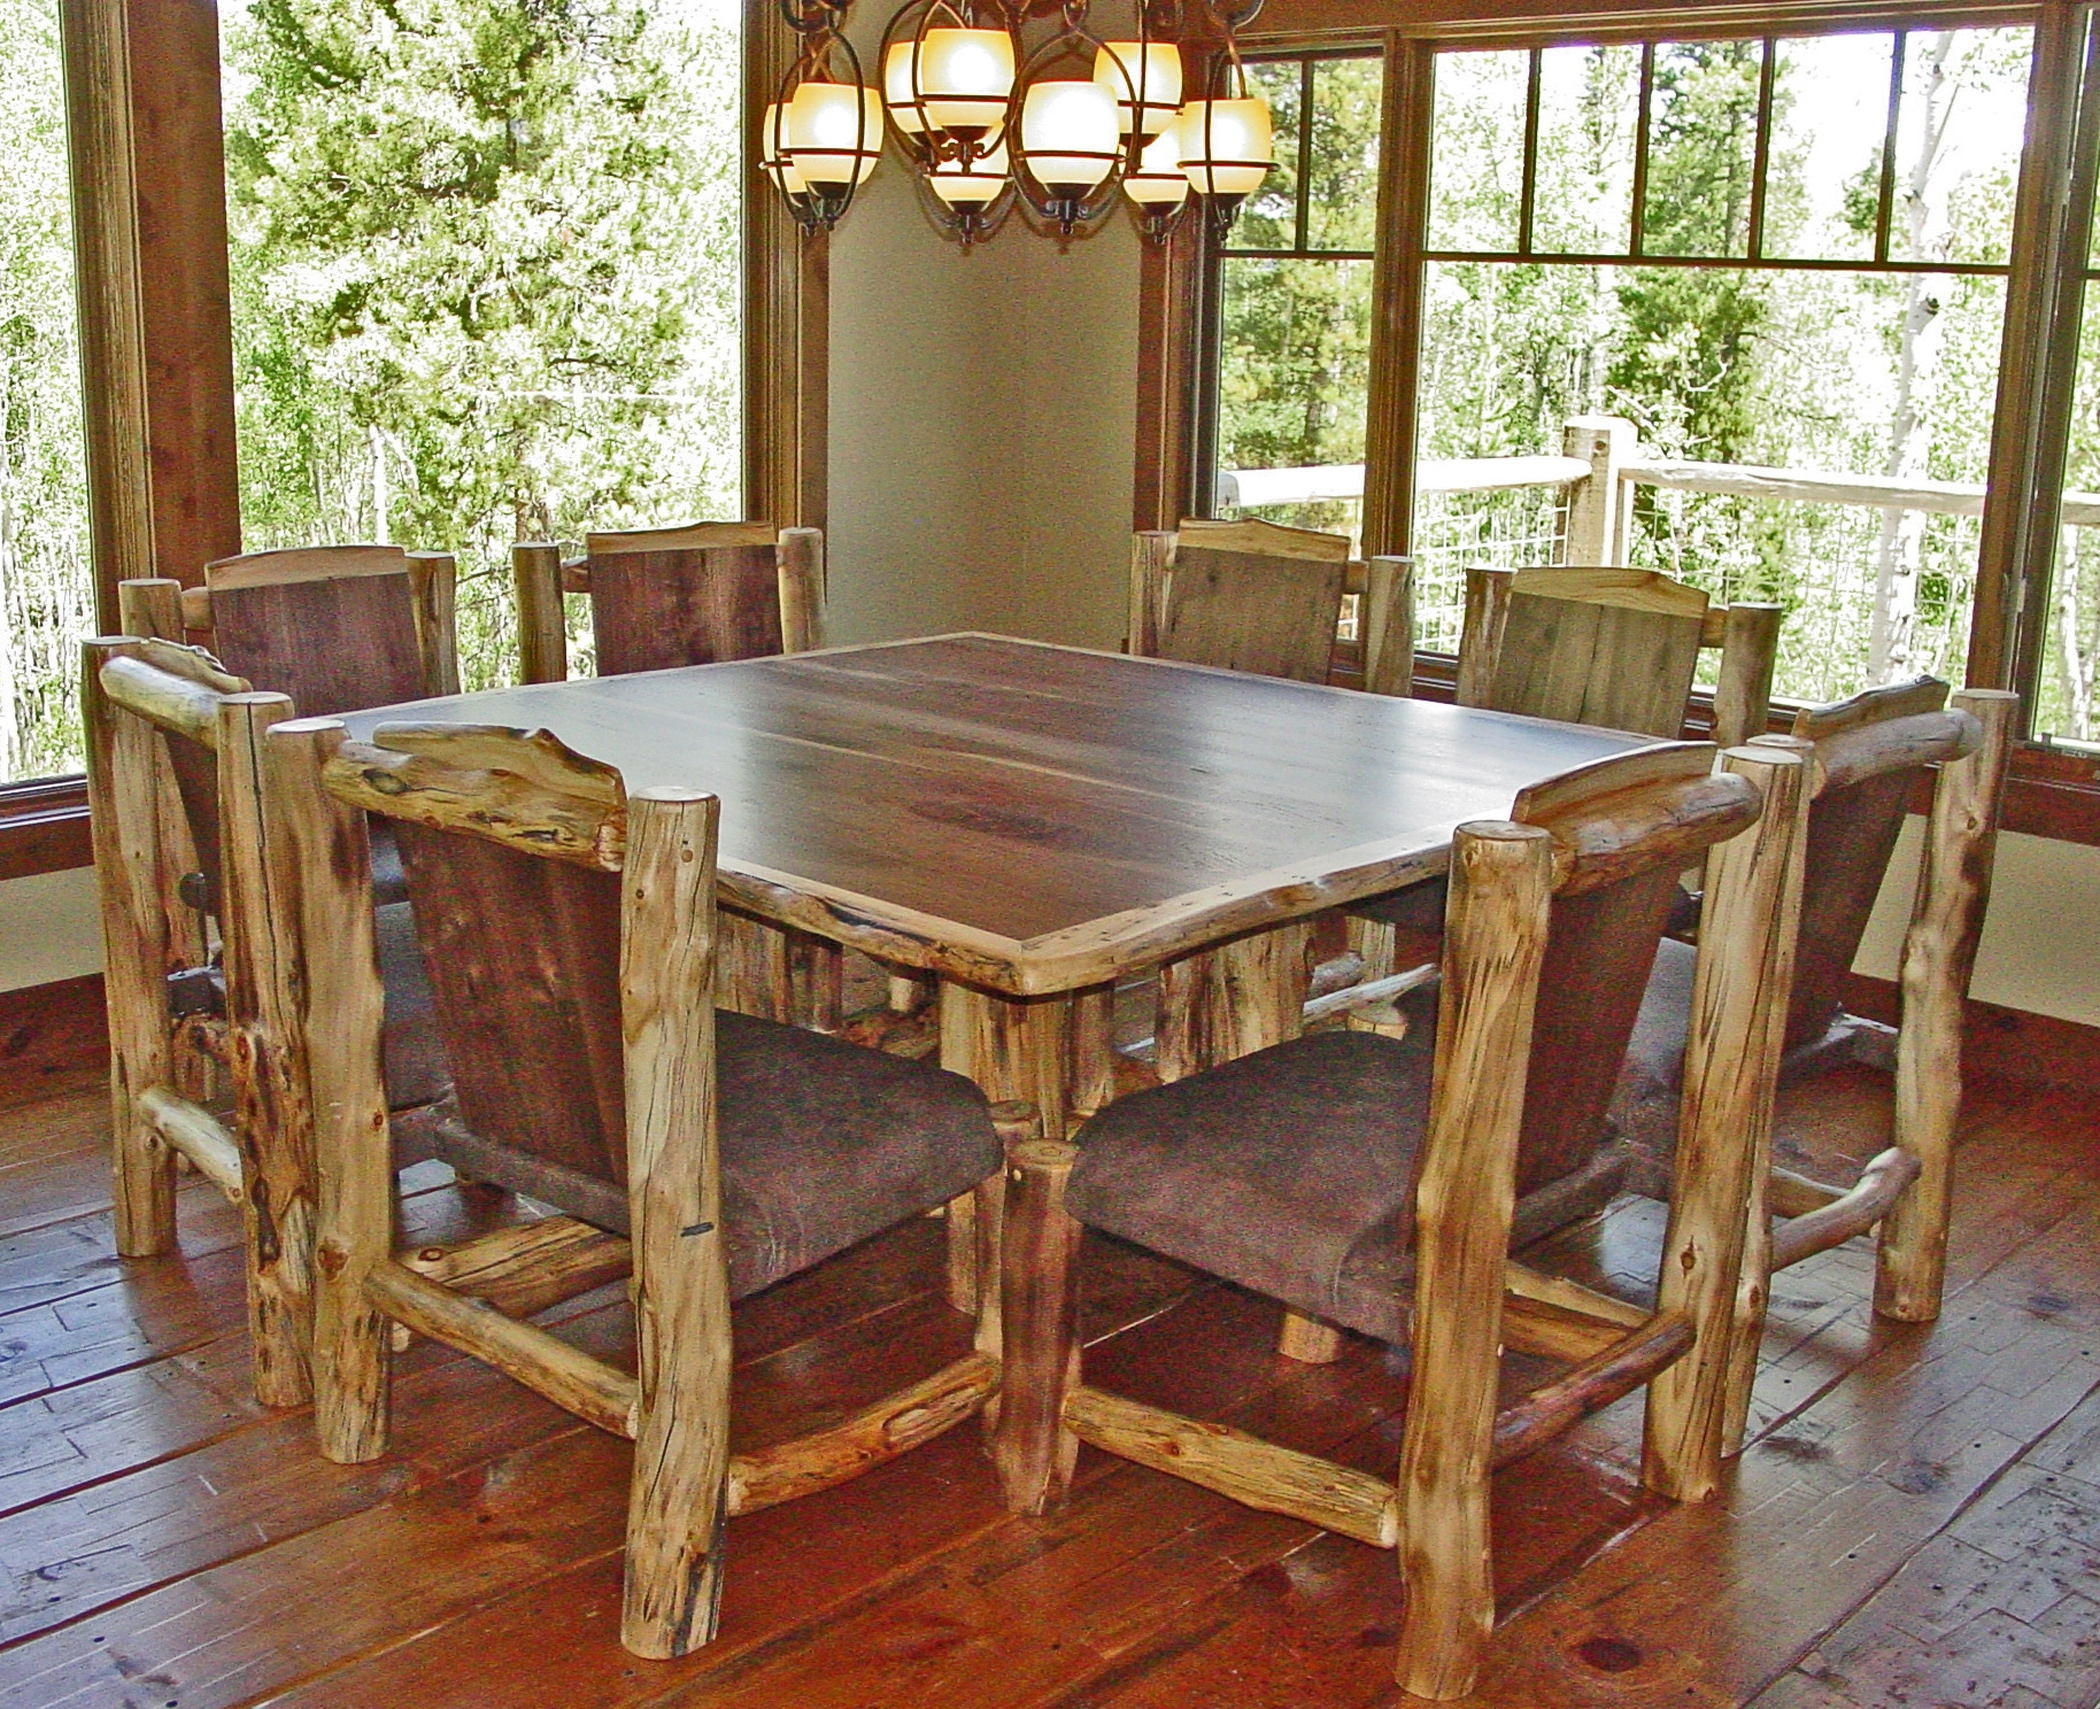 Popular Dining Tables For Eight Throughout Rustic Log Square Dining Table Below Artistic Pendant Lighting And (Gallery 17 of 25)